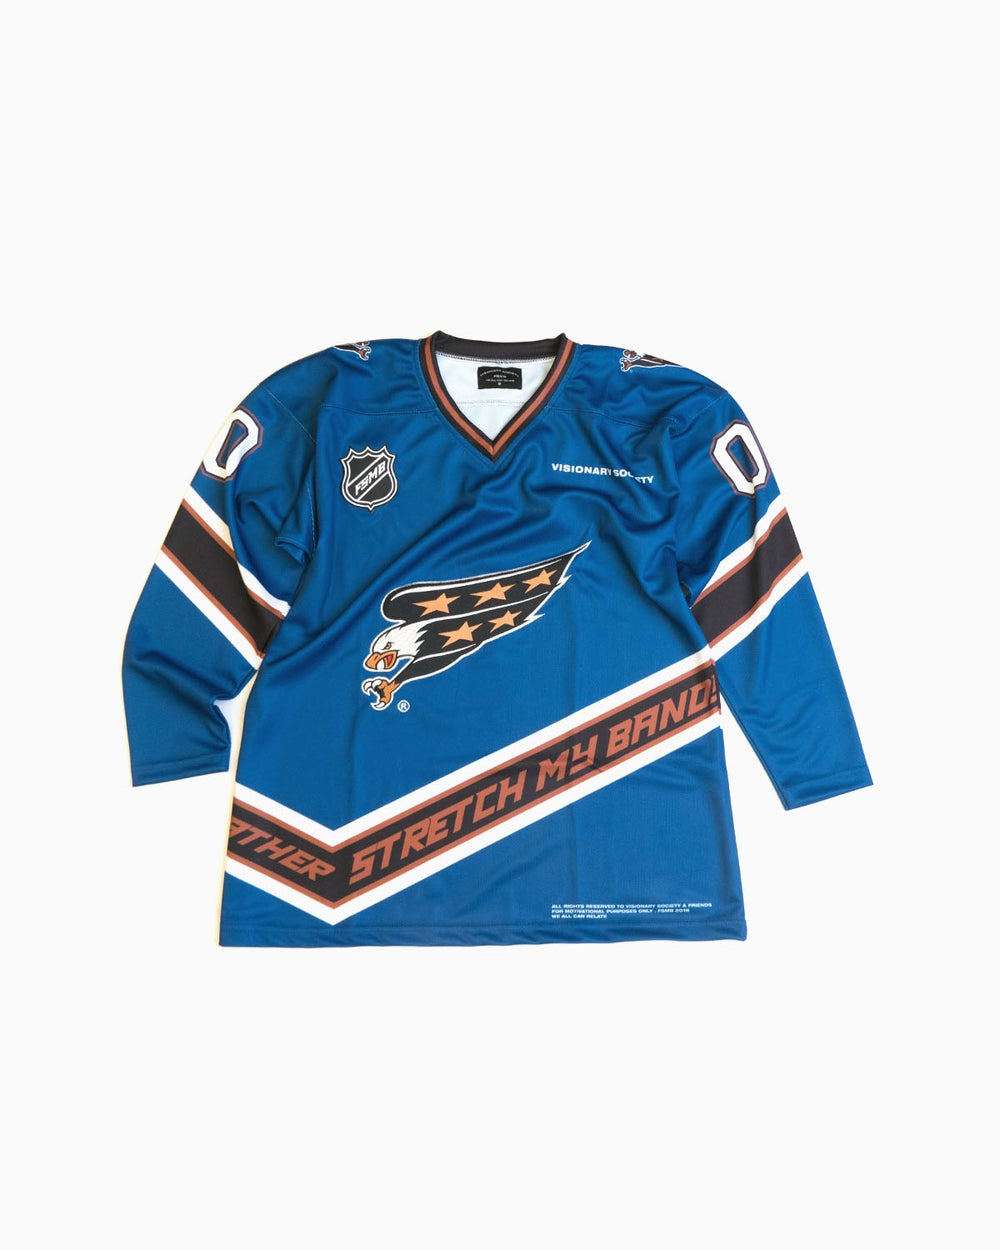 Image of FSMB® Capitals Hockey jersey